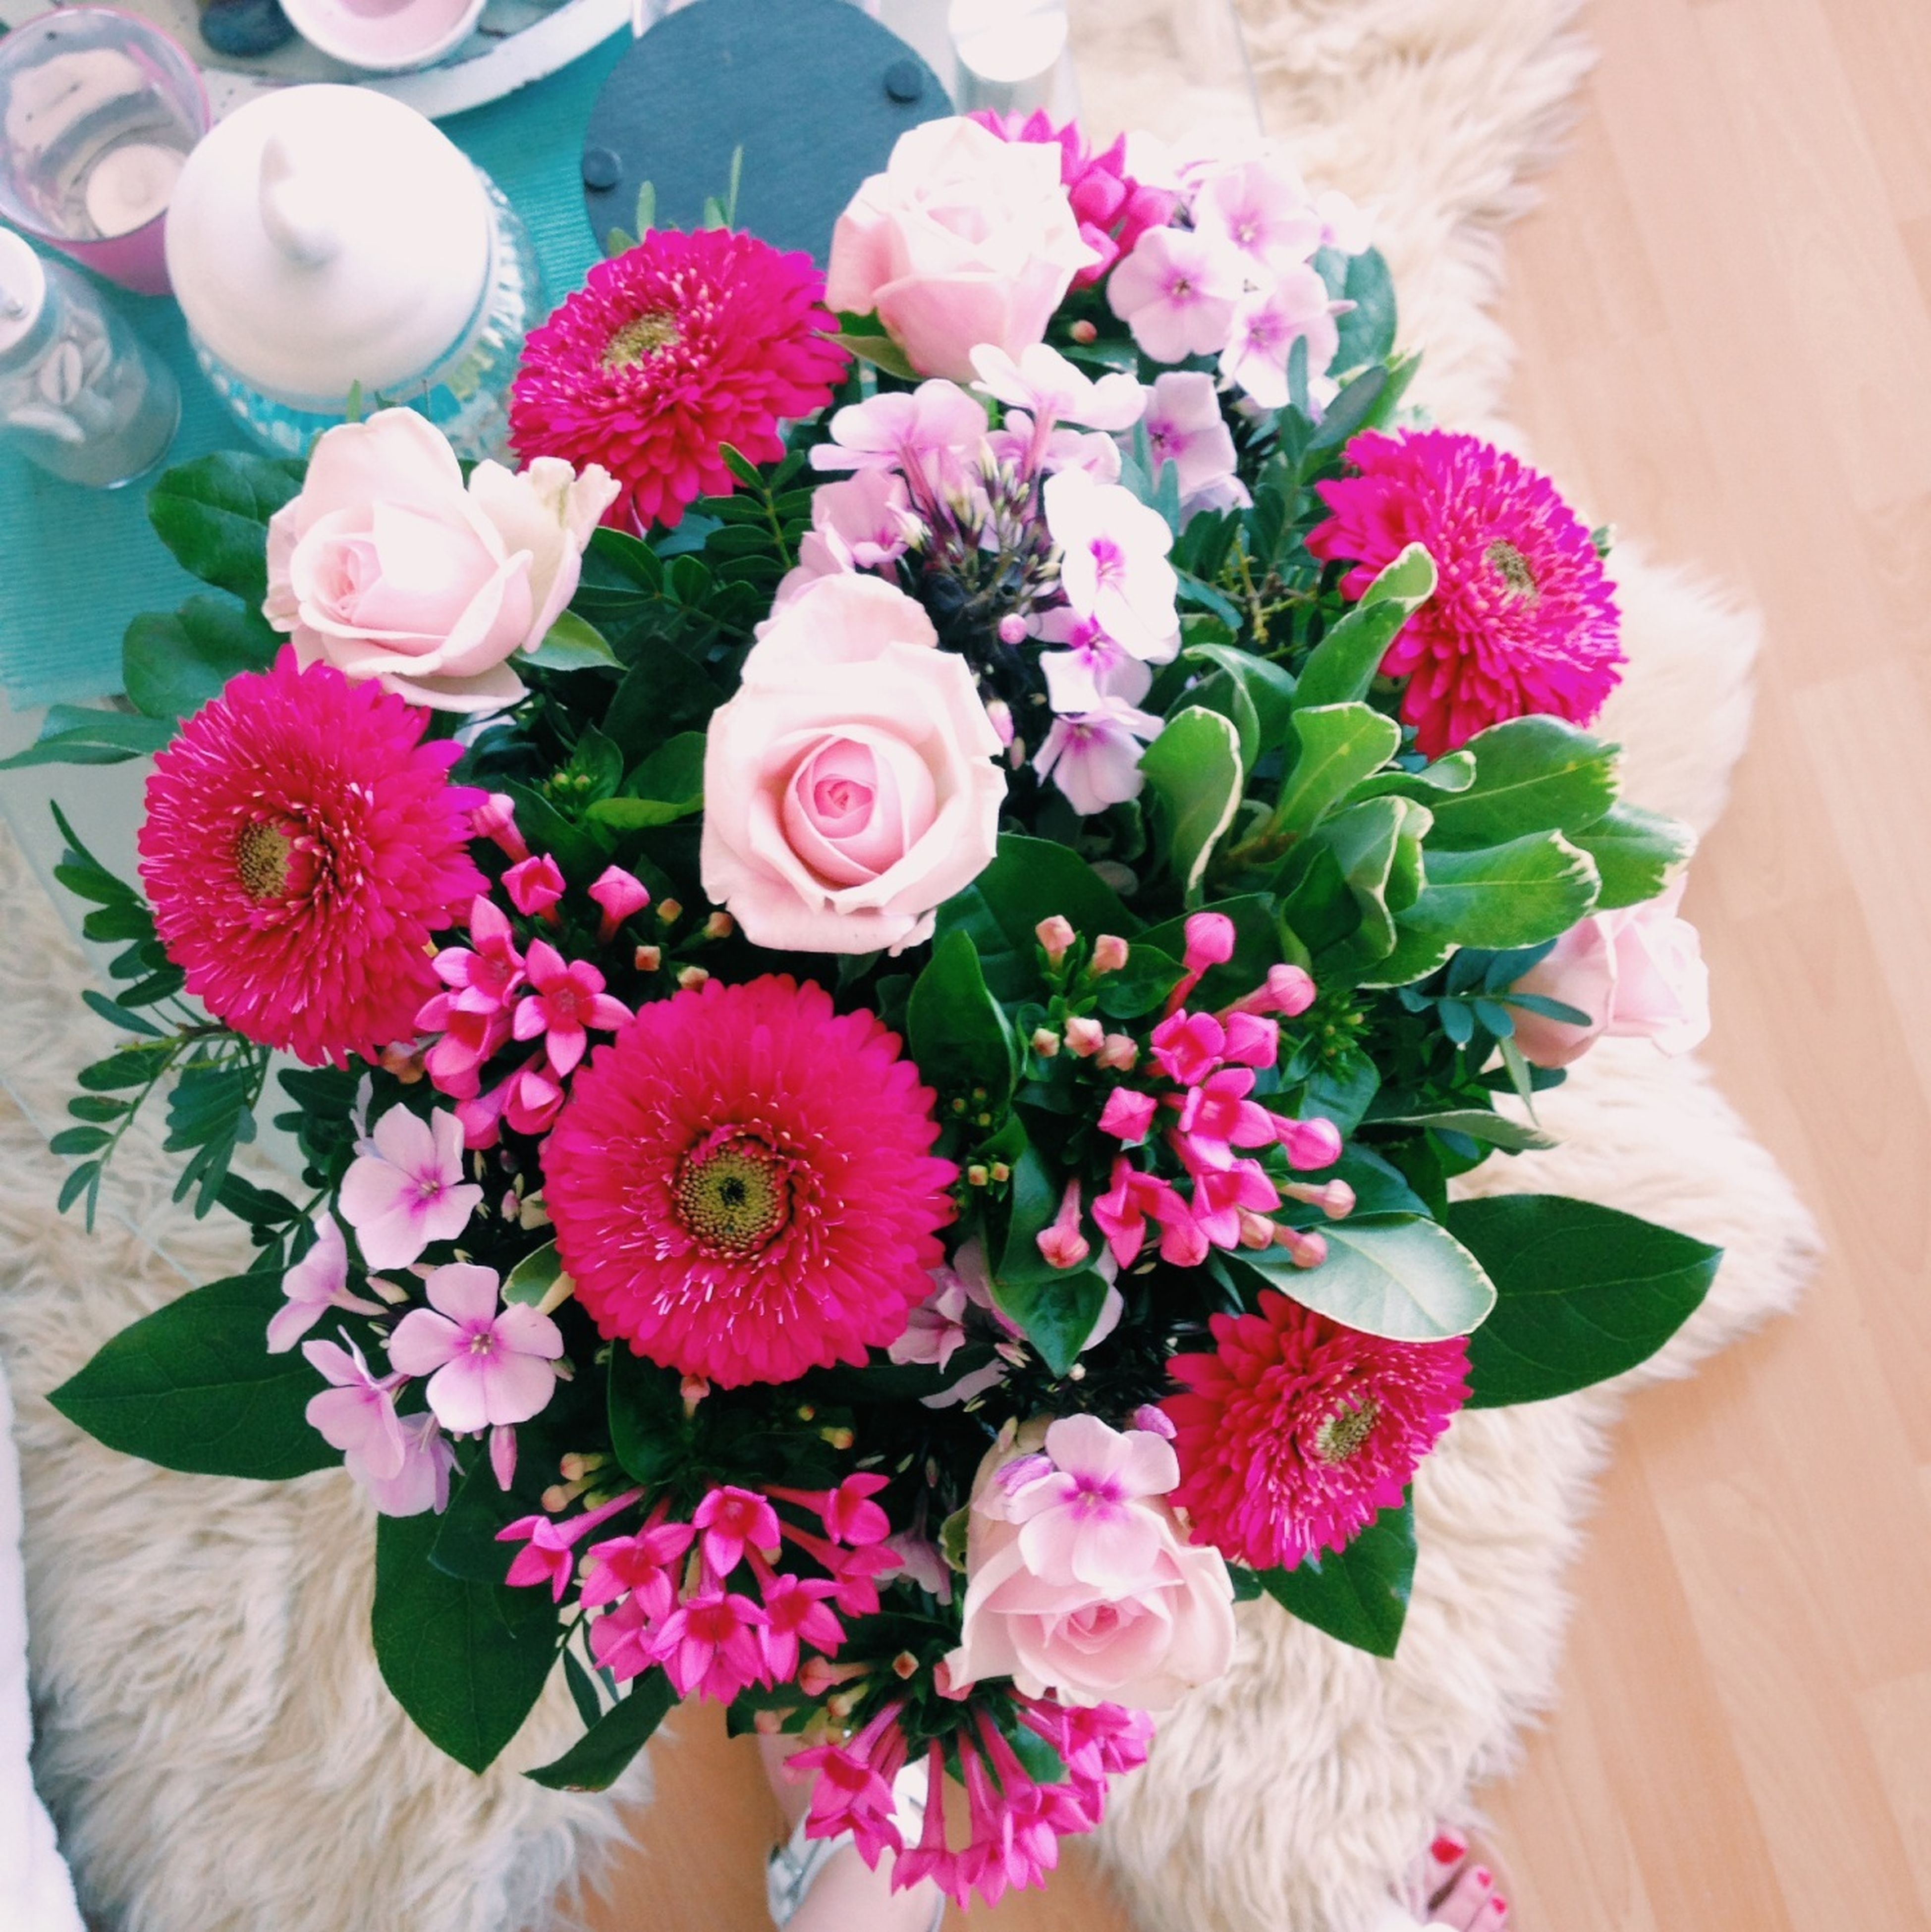 flower, indoors, freshness, fragility, petal, vase, high angle view, bouquet, table, flower head, flower arrangement, bunch of flowers, pink color, rose - flower, decoration, home interior, beauty in nature, multi colored, directly above, plant